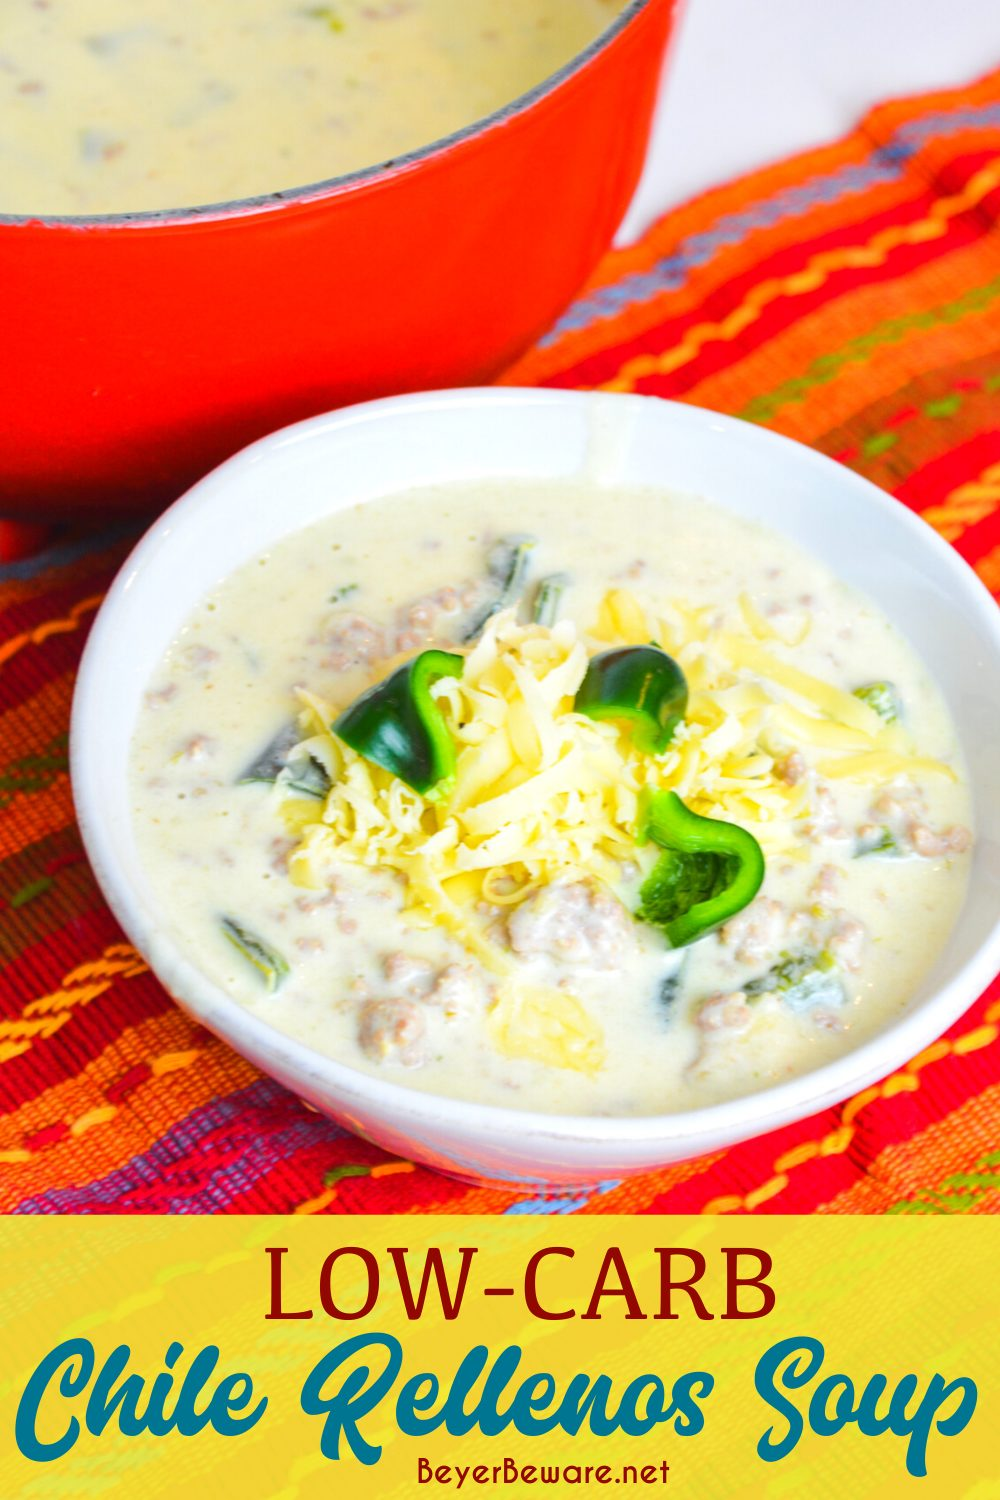 Low-carb chile Rellenos soup is a creamy keto Mexican soup recipe combining queso and cream cheese, ground pork, taco seasonings, and poblano peppers. This is poblano pepper and sausage soup is full of flavors just like your favorite chile Rellenos at your favorite Mexican restaurant.